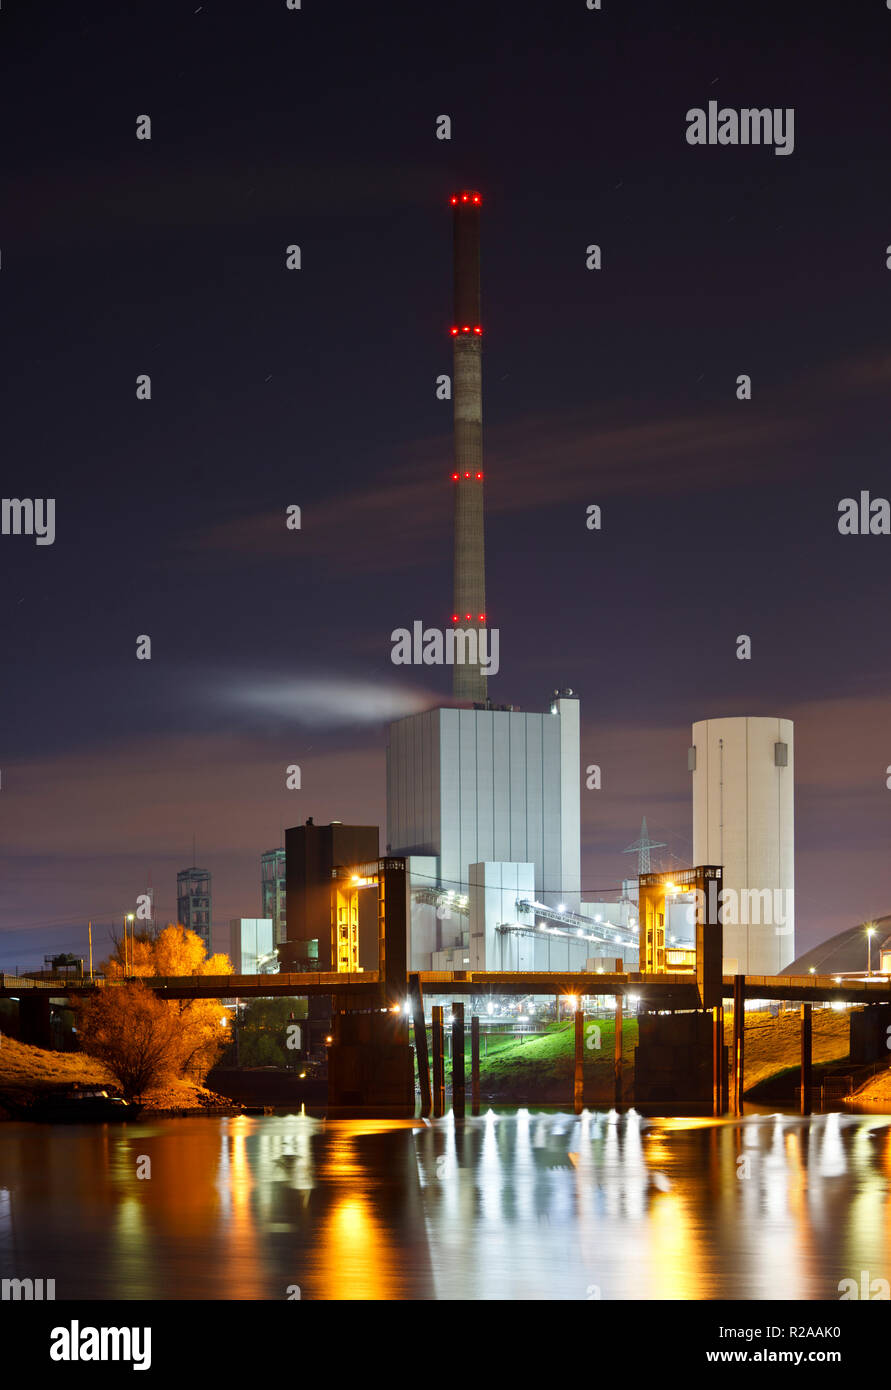 An old coal power station with reflection in the water at night, a bridge in front. - Stock Image